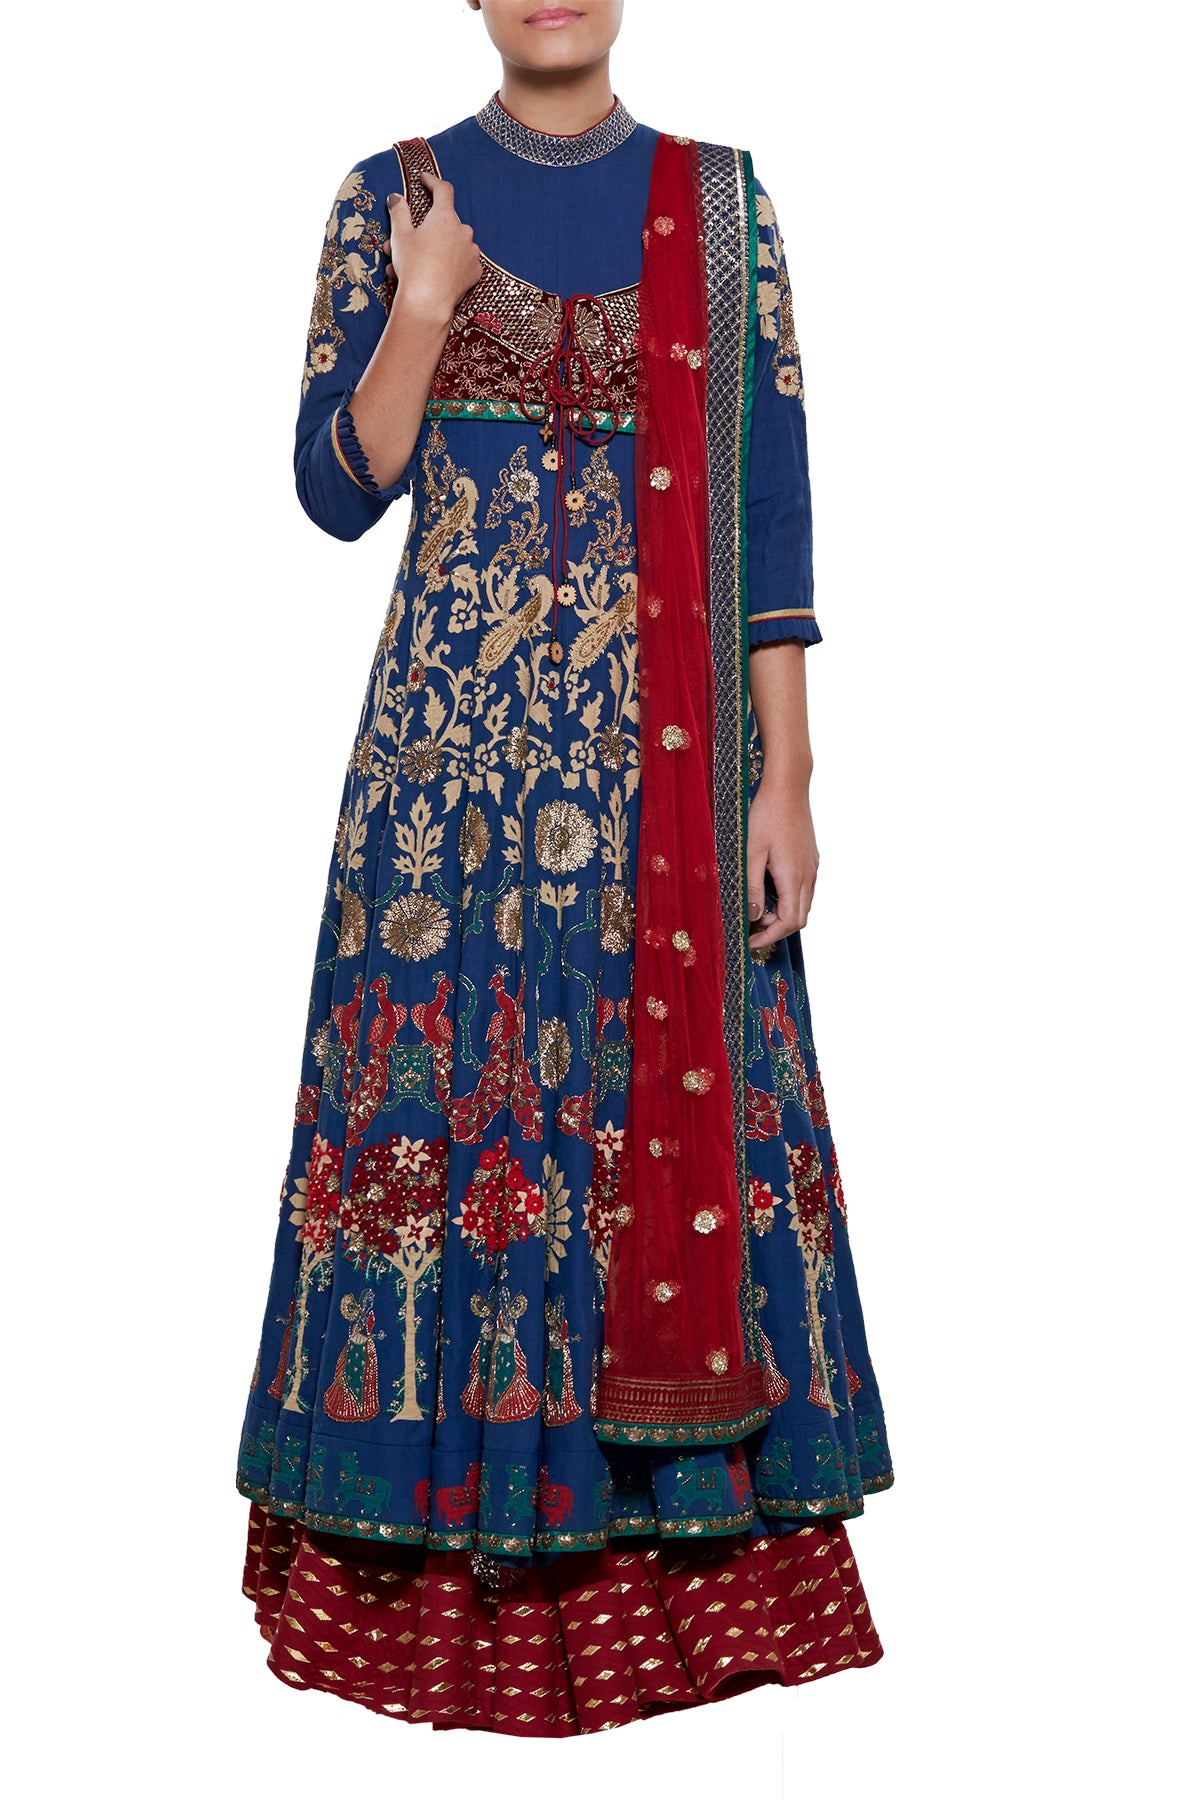 Reeking of royalty in a riveting blue & maroon medley, this gota lehenga skirt in net is paired to perfection with its appliqué blue top. The ensemble is completed with its net embroidered dupatta and short zardosi jacket.